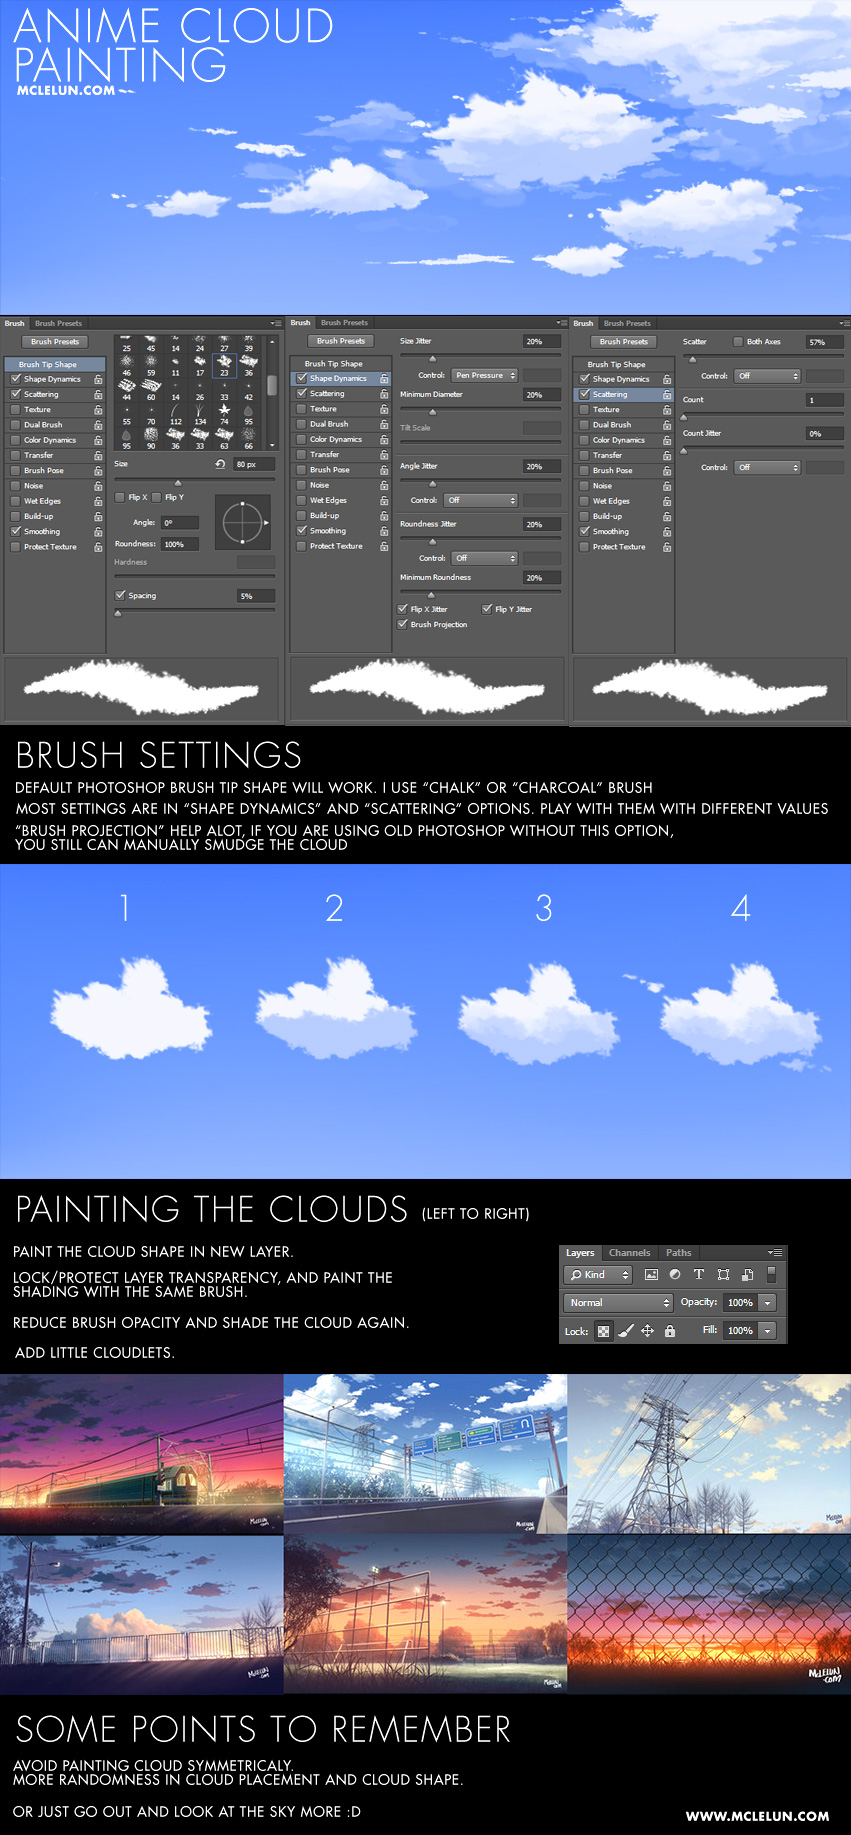 Anime cloud painting by mclelun on deviantart anime cloud painting by mclelun anime cloud painting by mclelun baditri Image collections